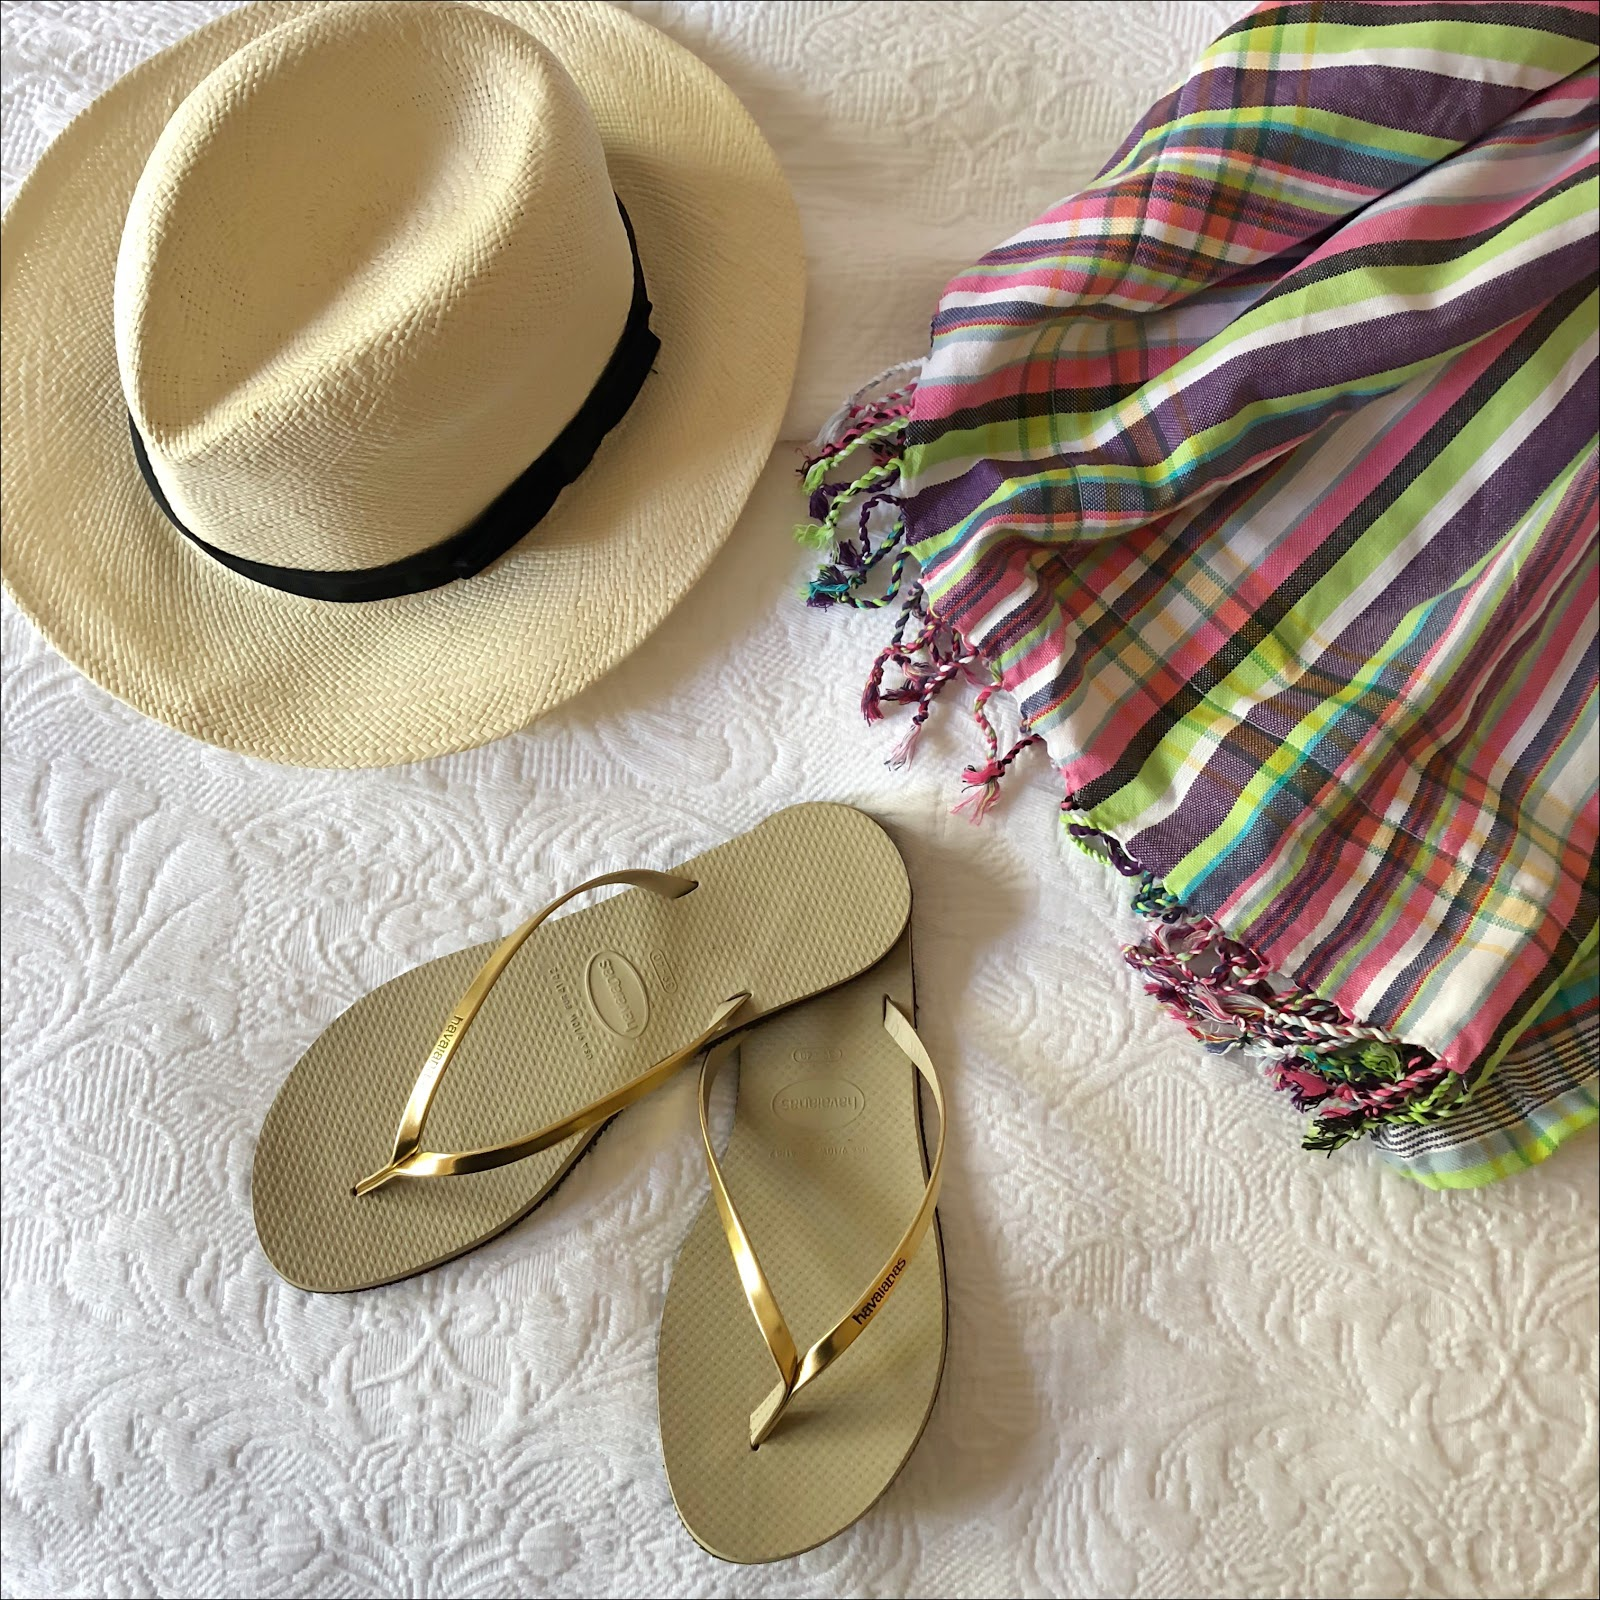 my midlife fashion, marks and spencer handwoven panama hat, kikoy beach towel, havaianas light gold you metallic flip flops